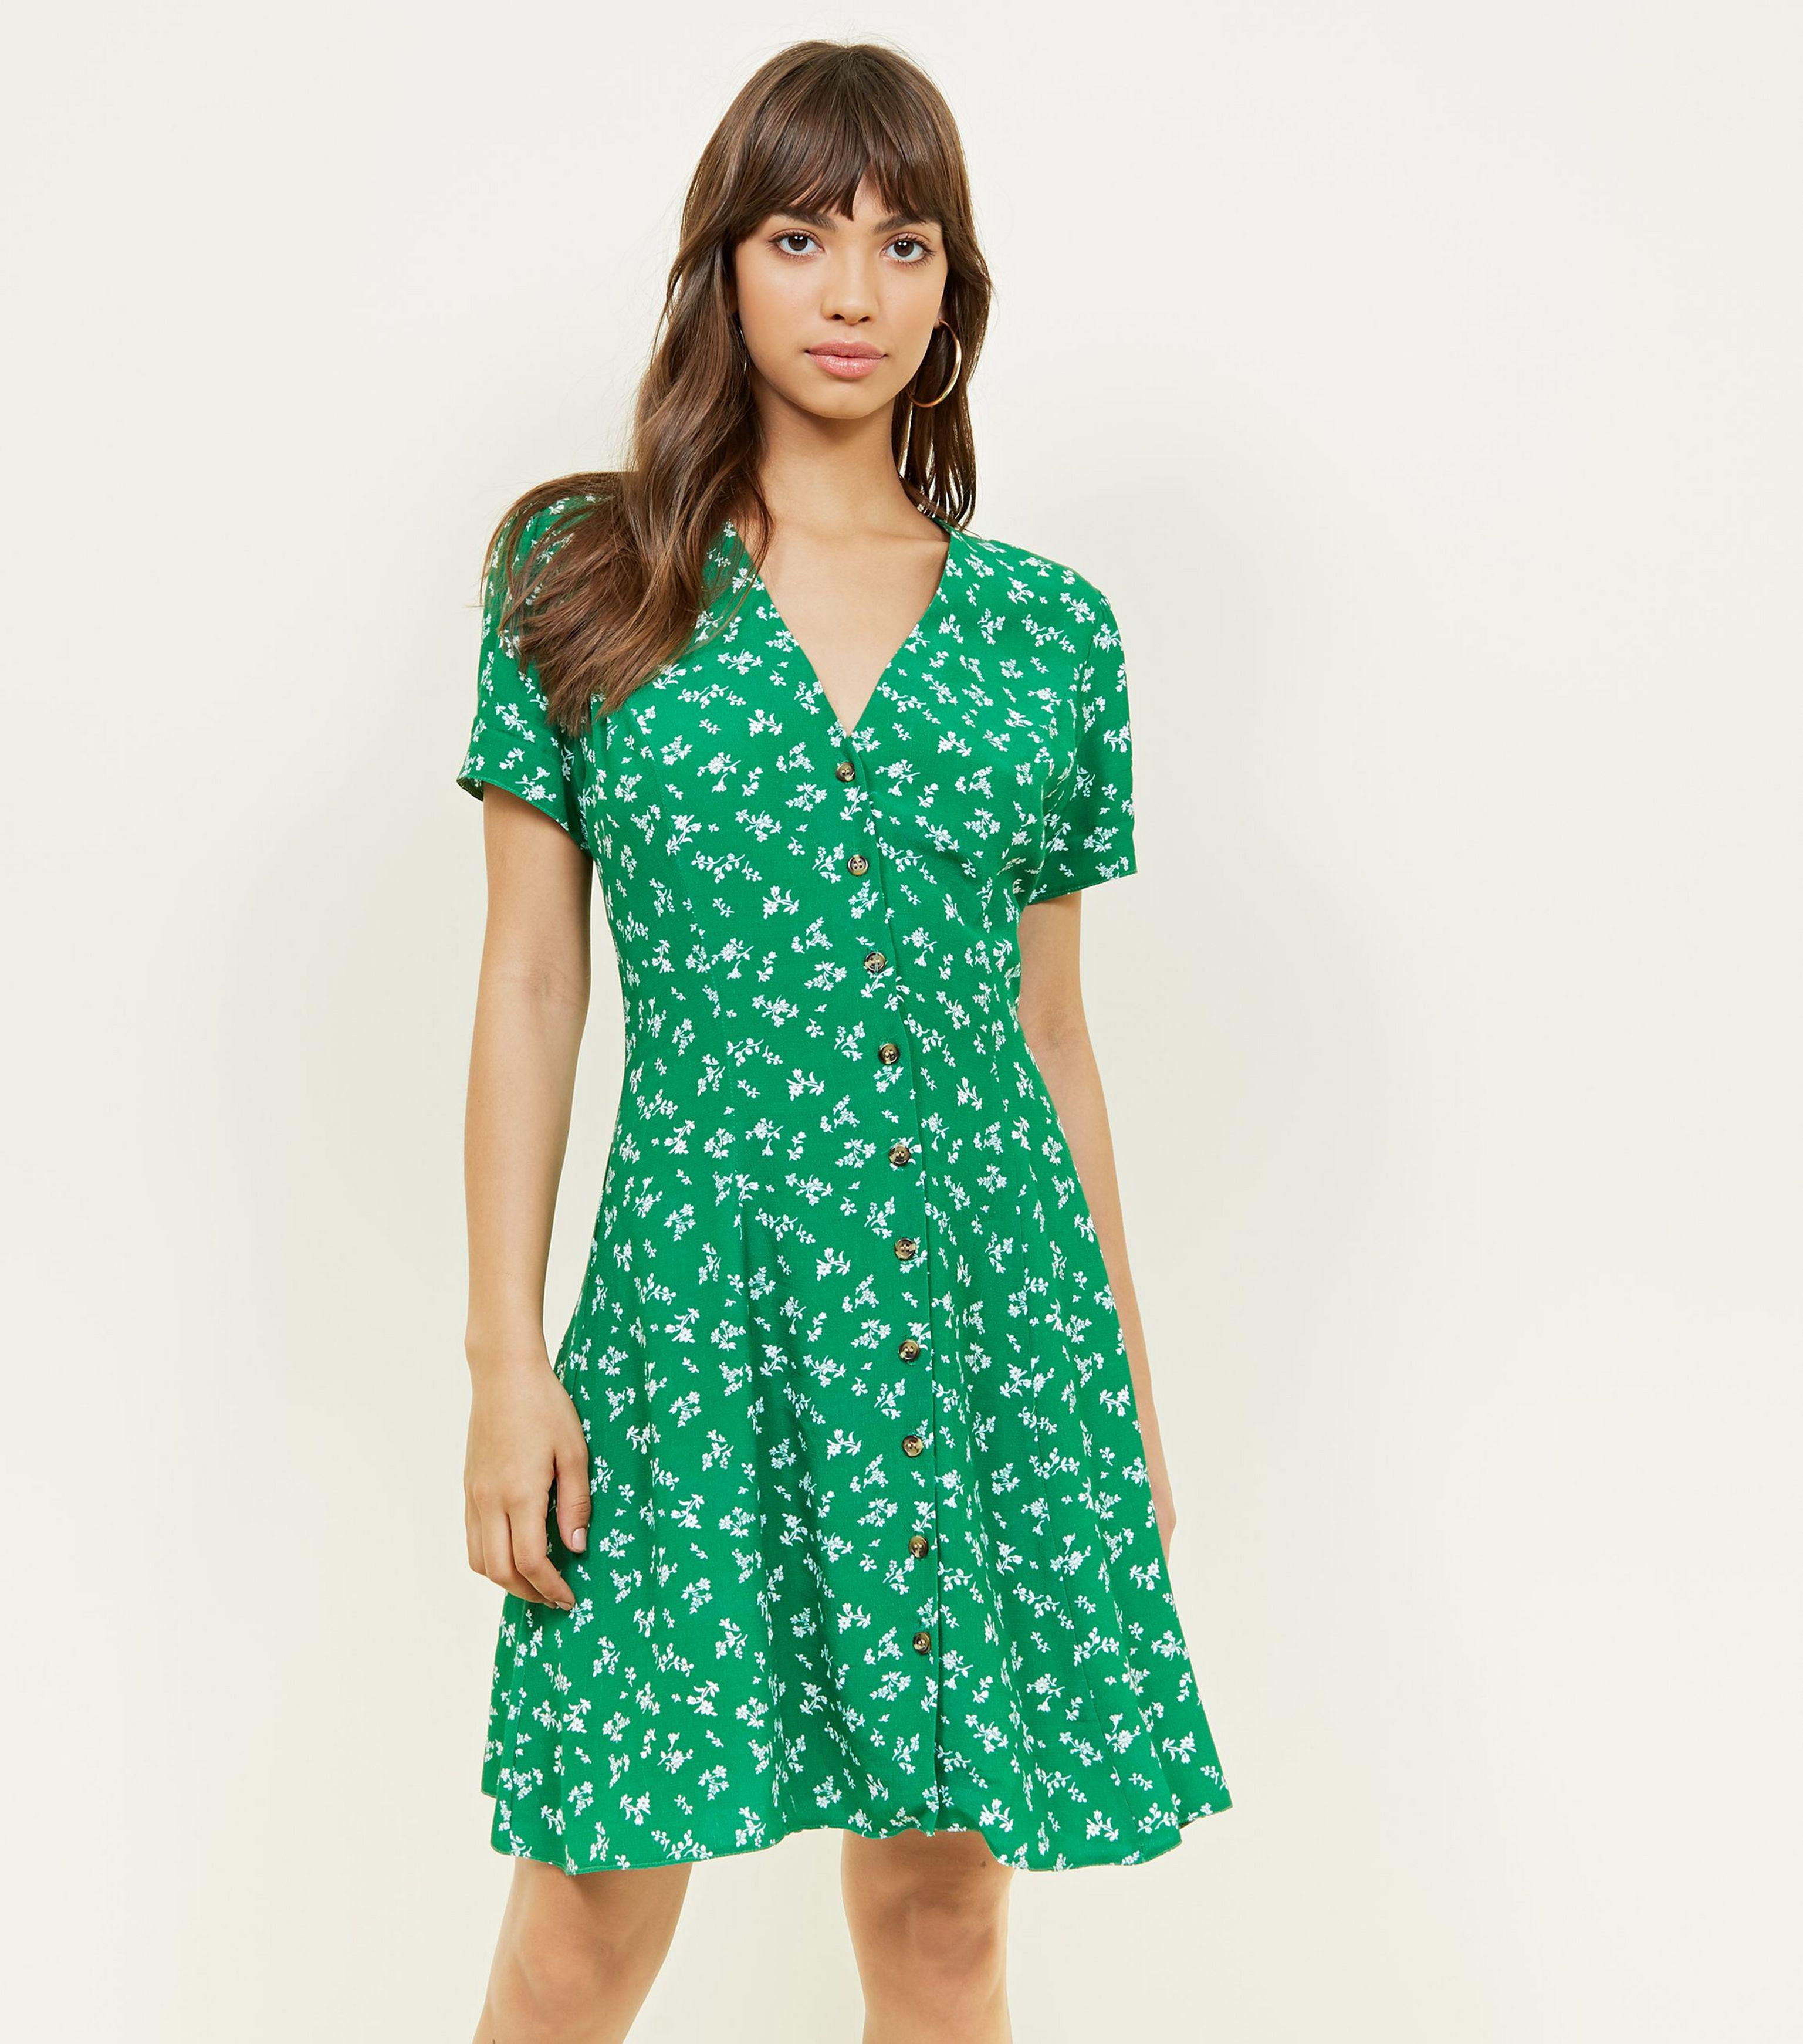 739414c2399f New Look Green Ditsy Floral Button Front Mini Dress in Green - Lyst